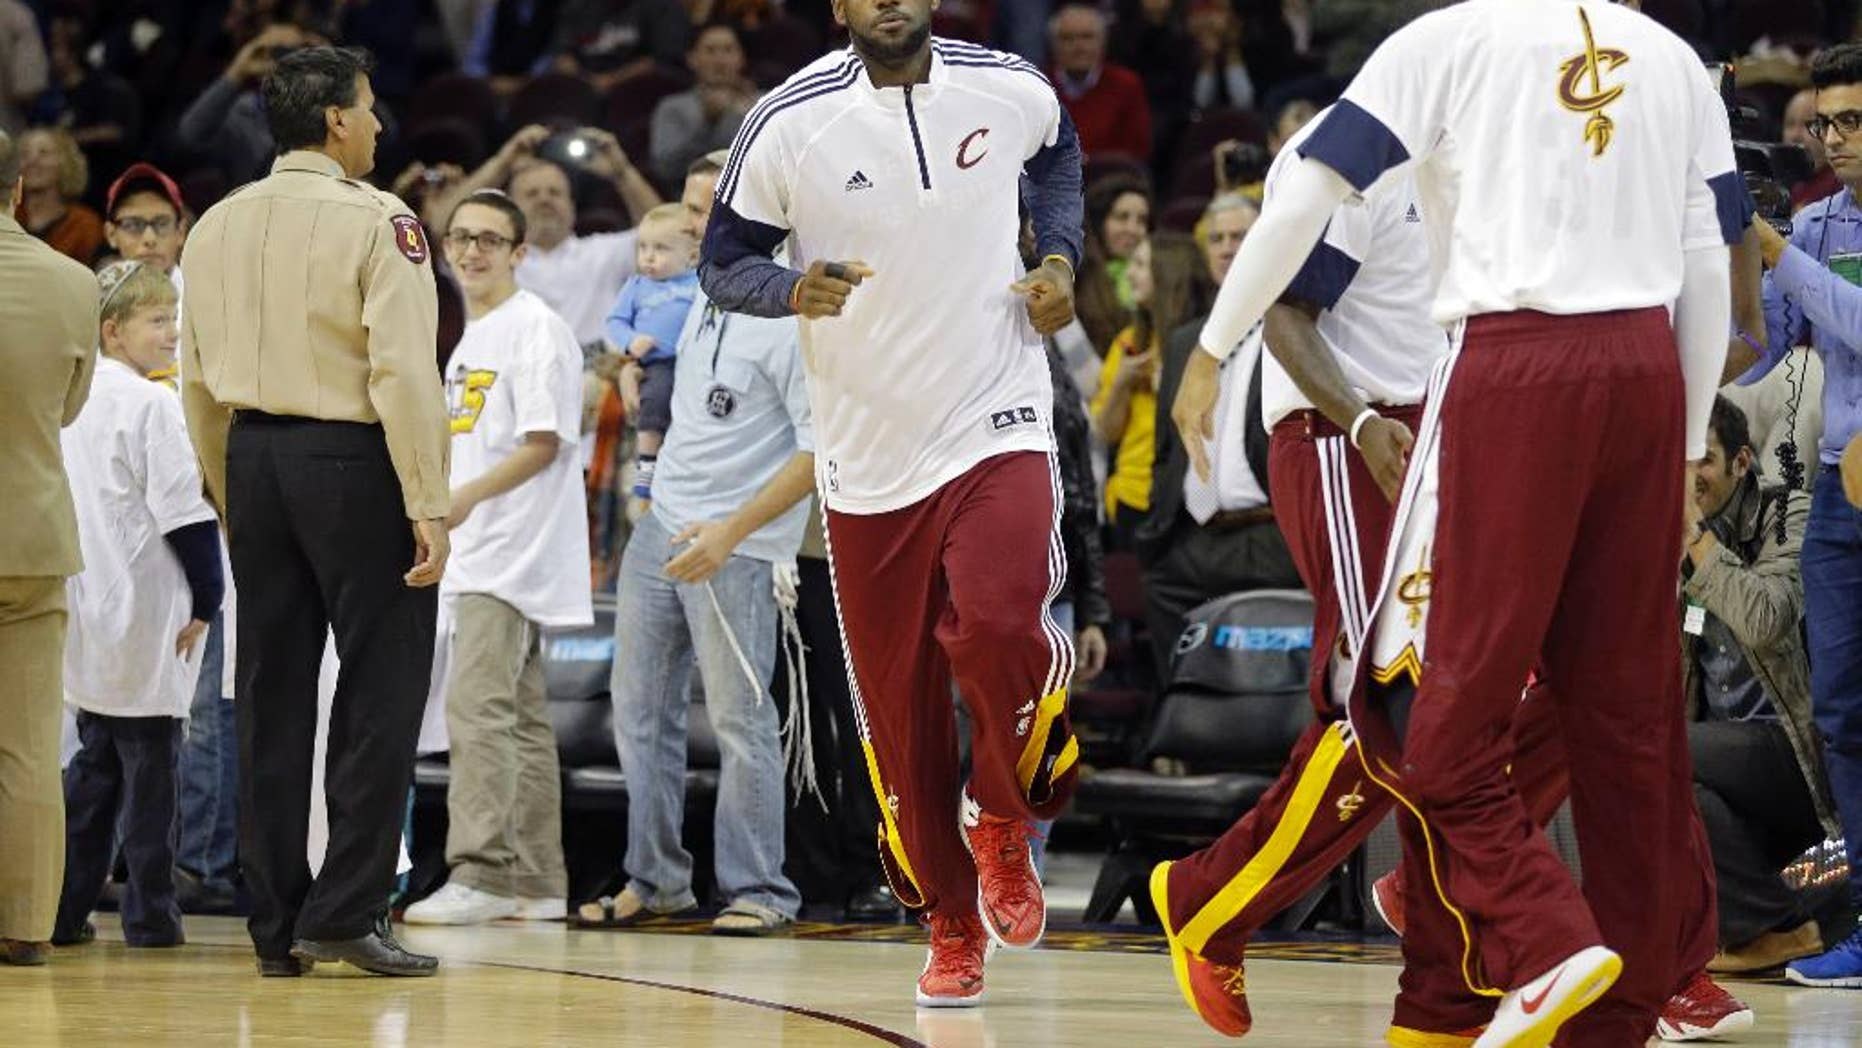 Cleveland Cavaliers' LeBron James takes the floor for warmups before a preseason basketball game against Maccabi Tel Aviv Sunday, Oct. 5, 2014, in Cleveland. (AP Photo/Mark Duncan)